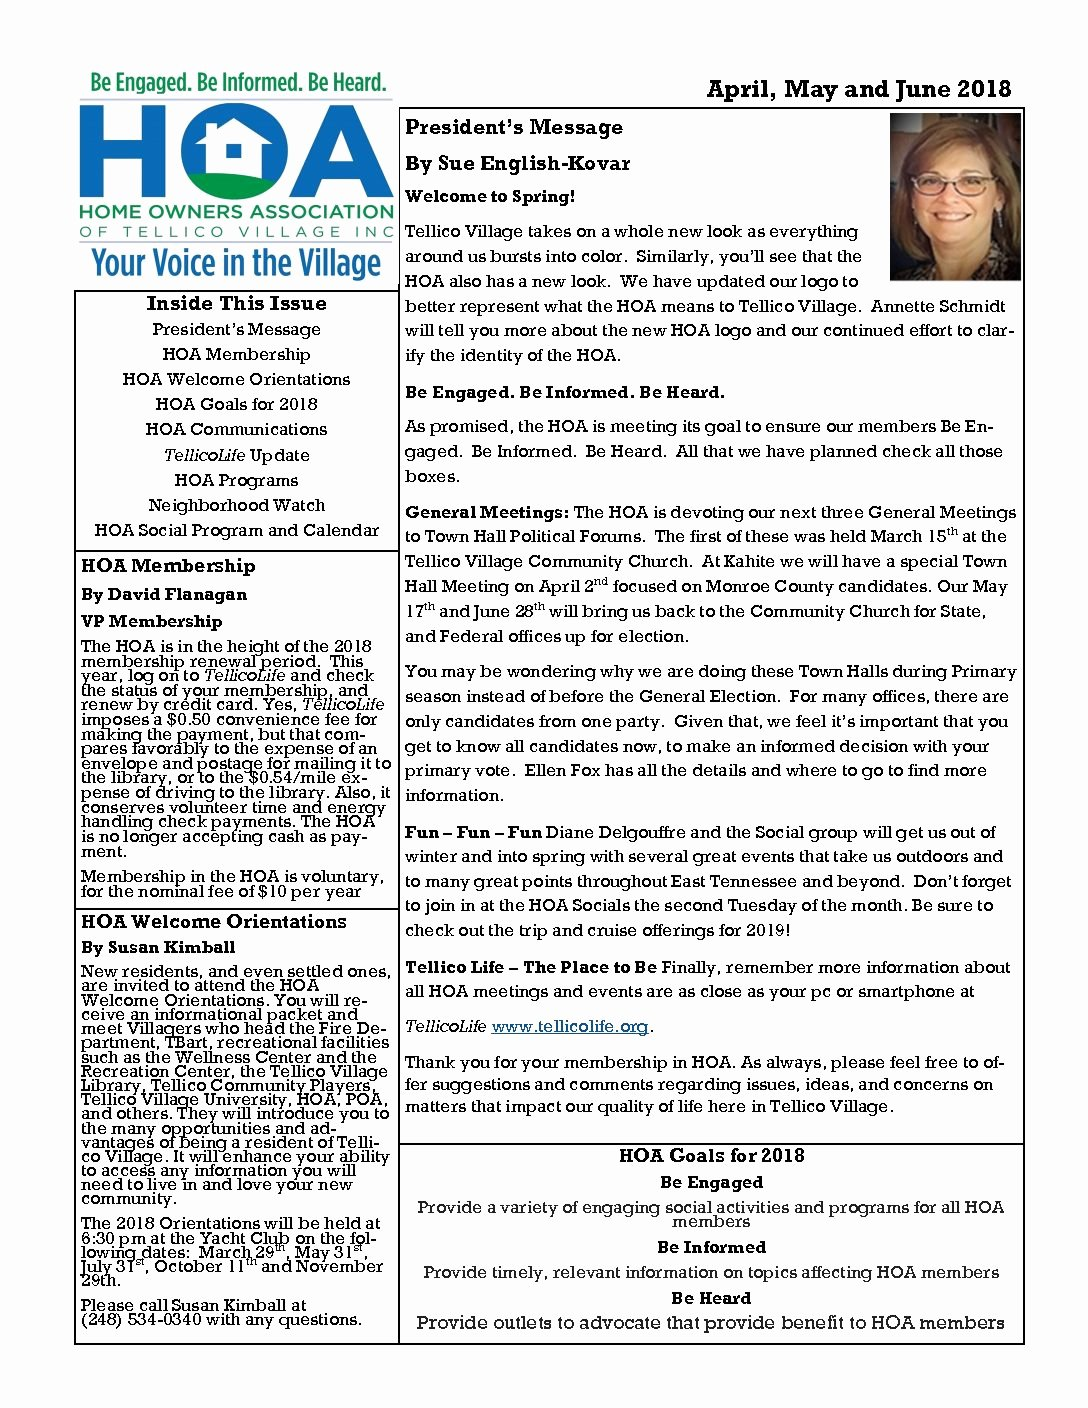 Homeowners association Newsletter Template Fresh Tellico Village Homeowners association – Be Informed – Be Engaged – Be Heard